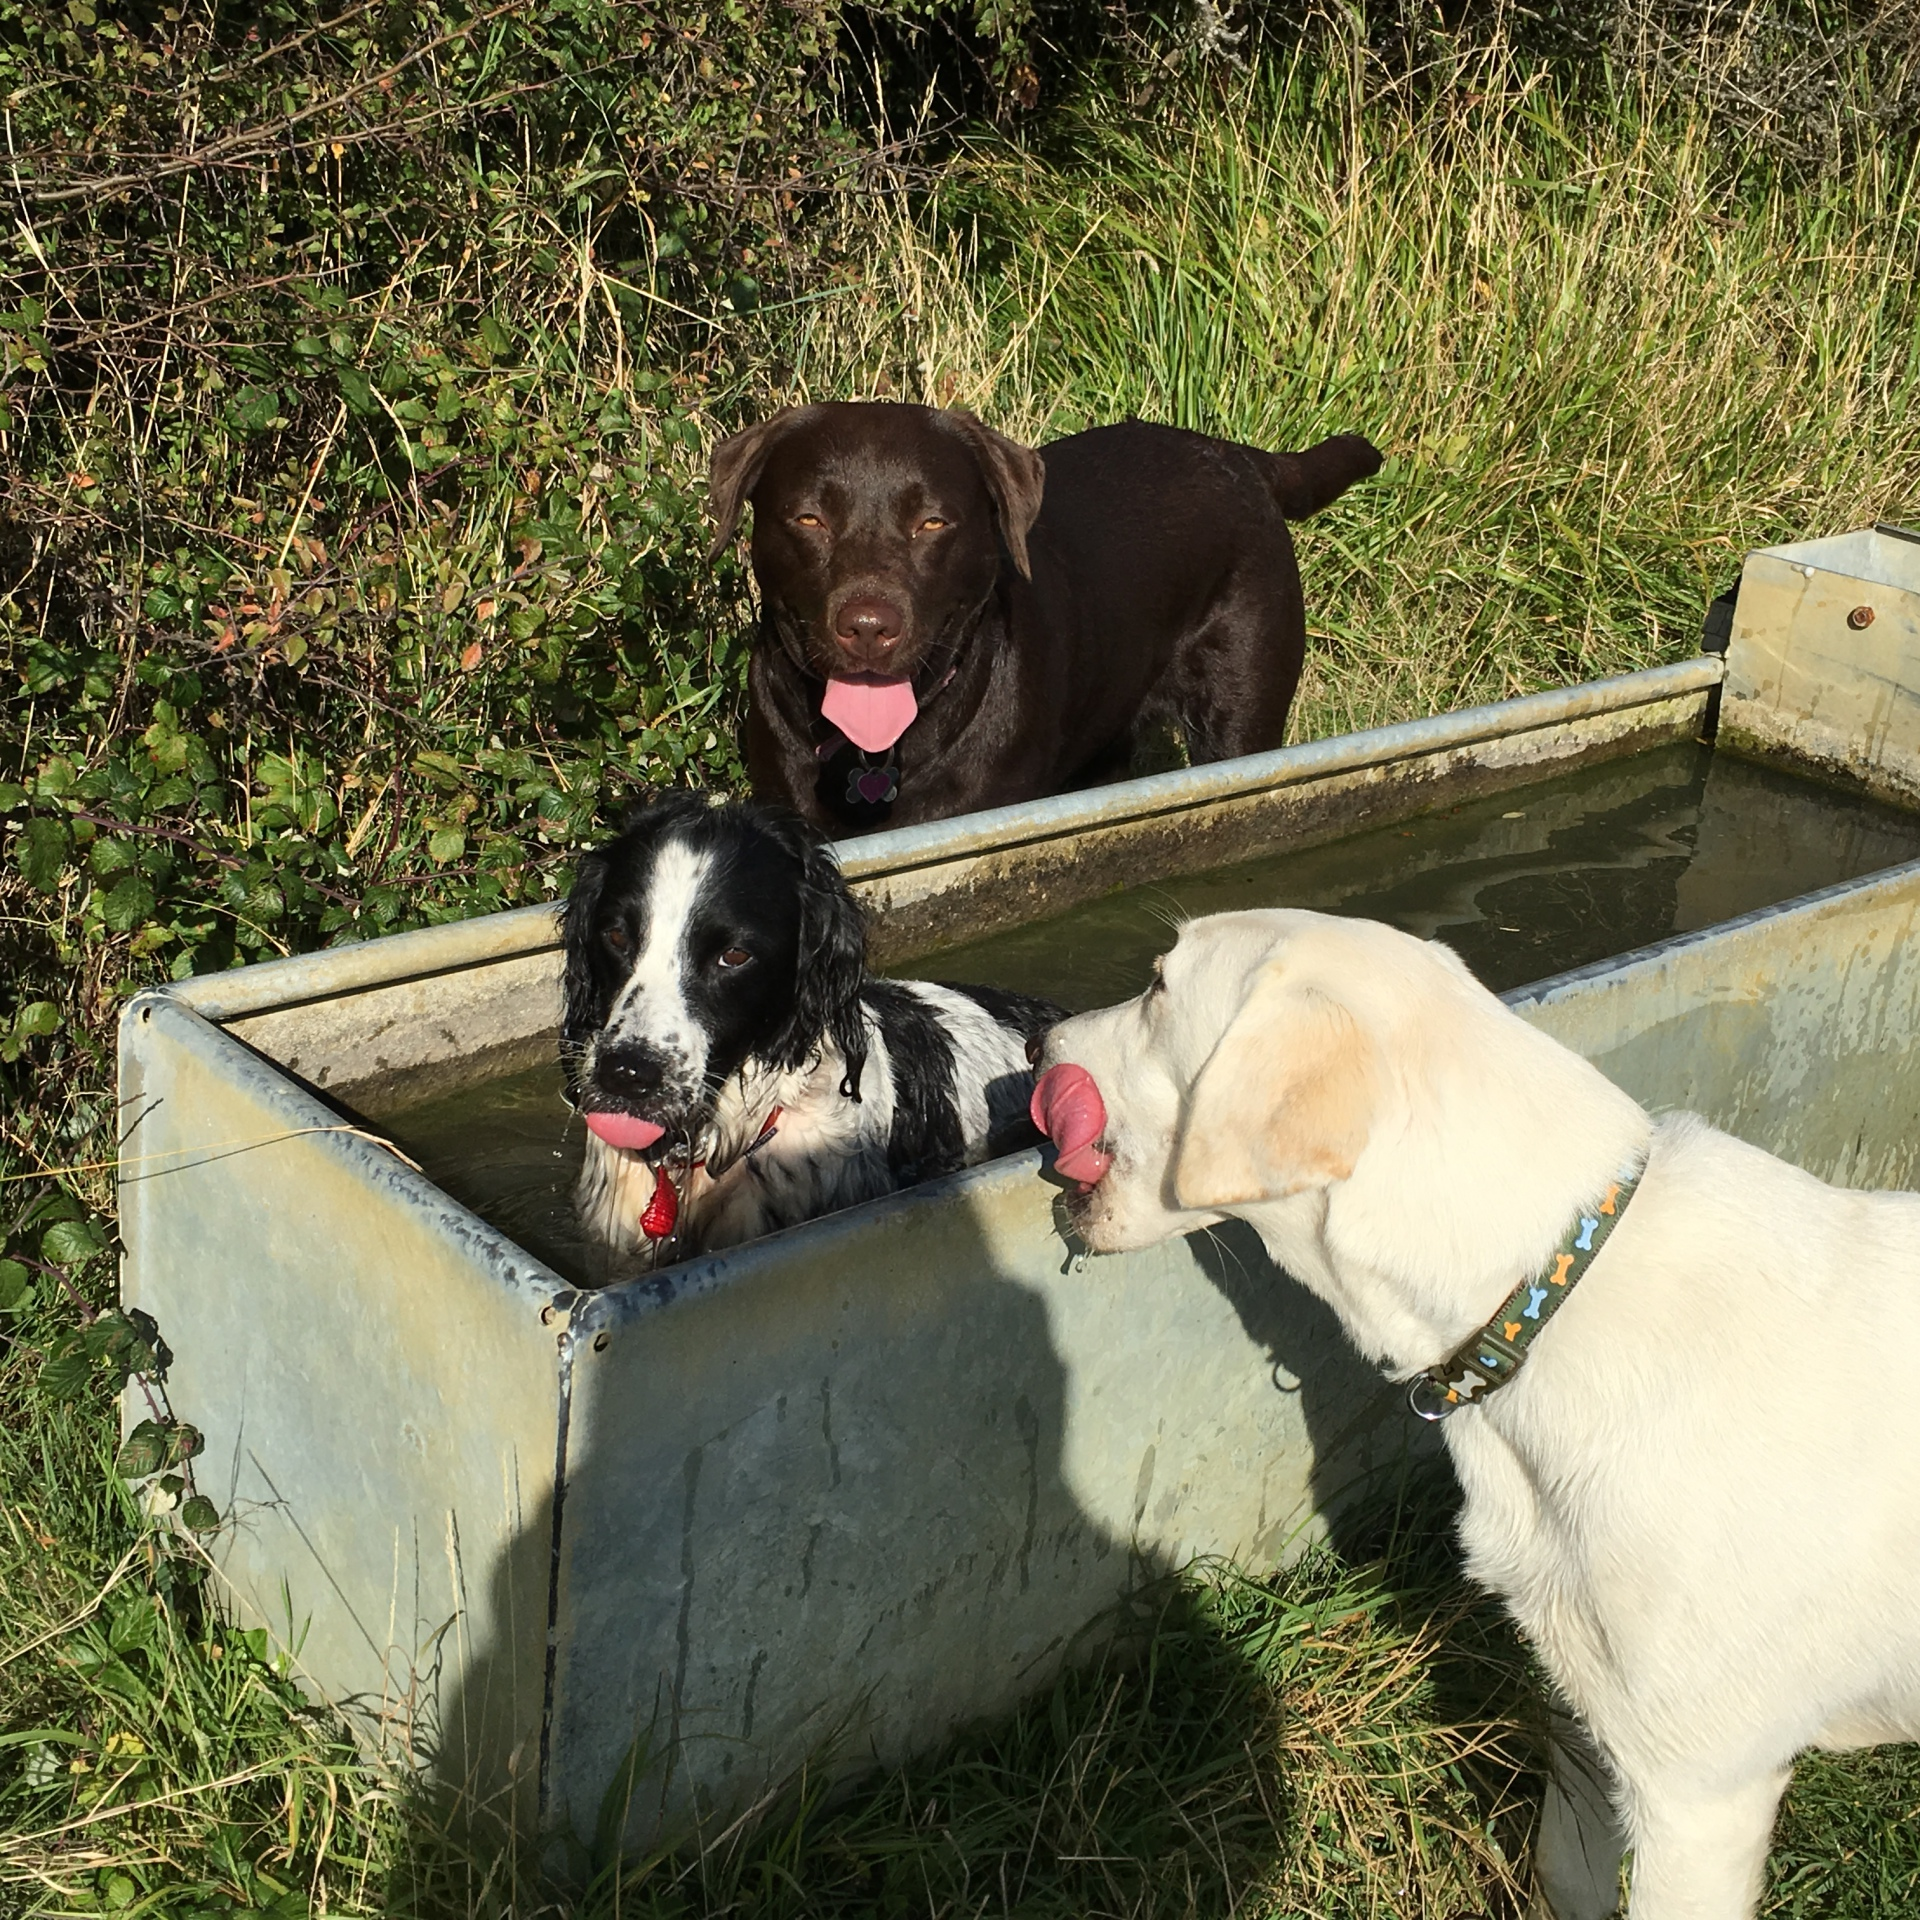 Dogs in water trough